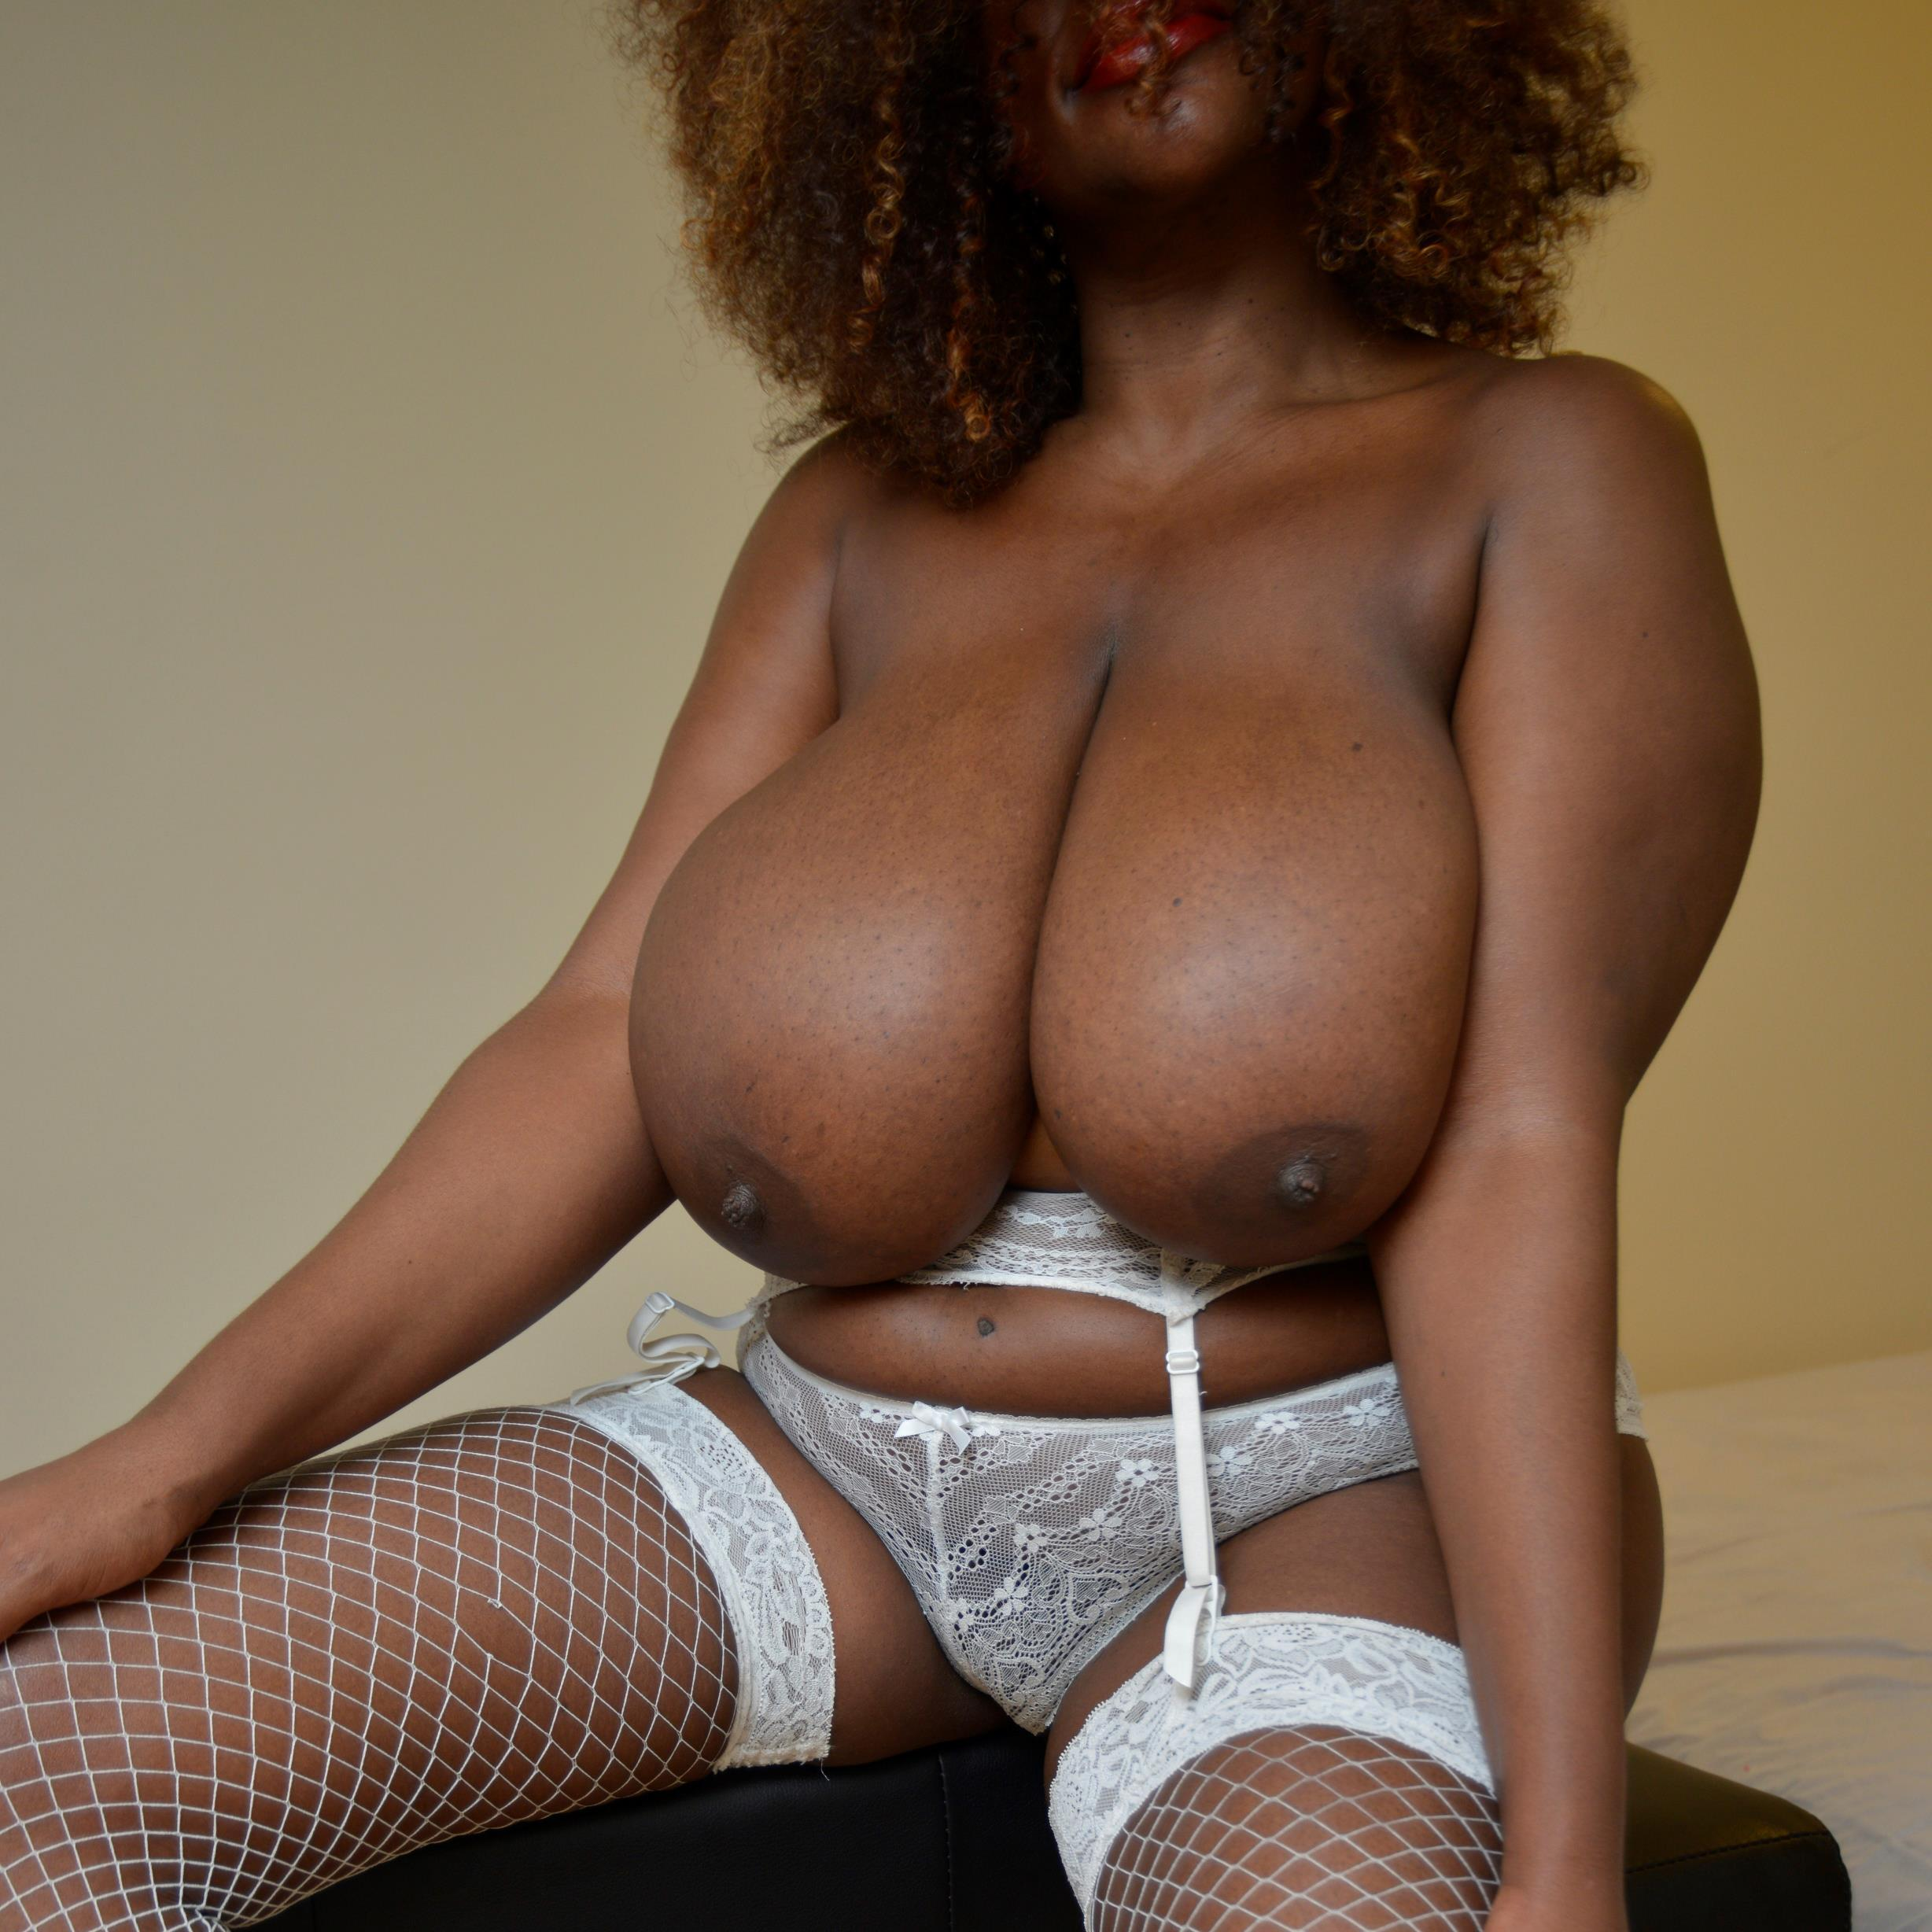 Black escorts with massive tits images